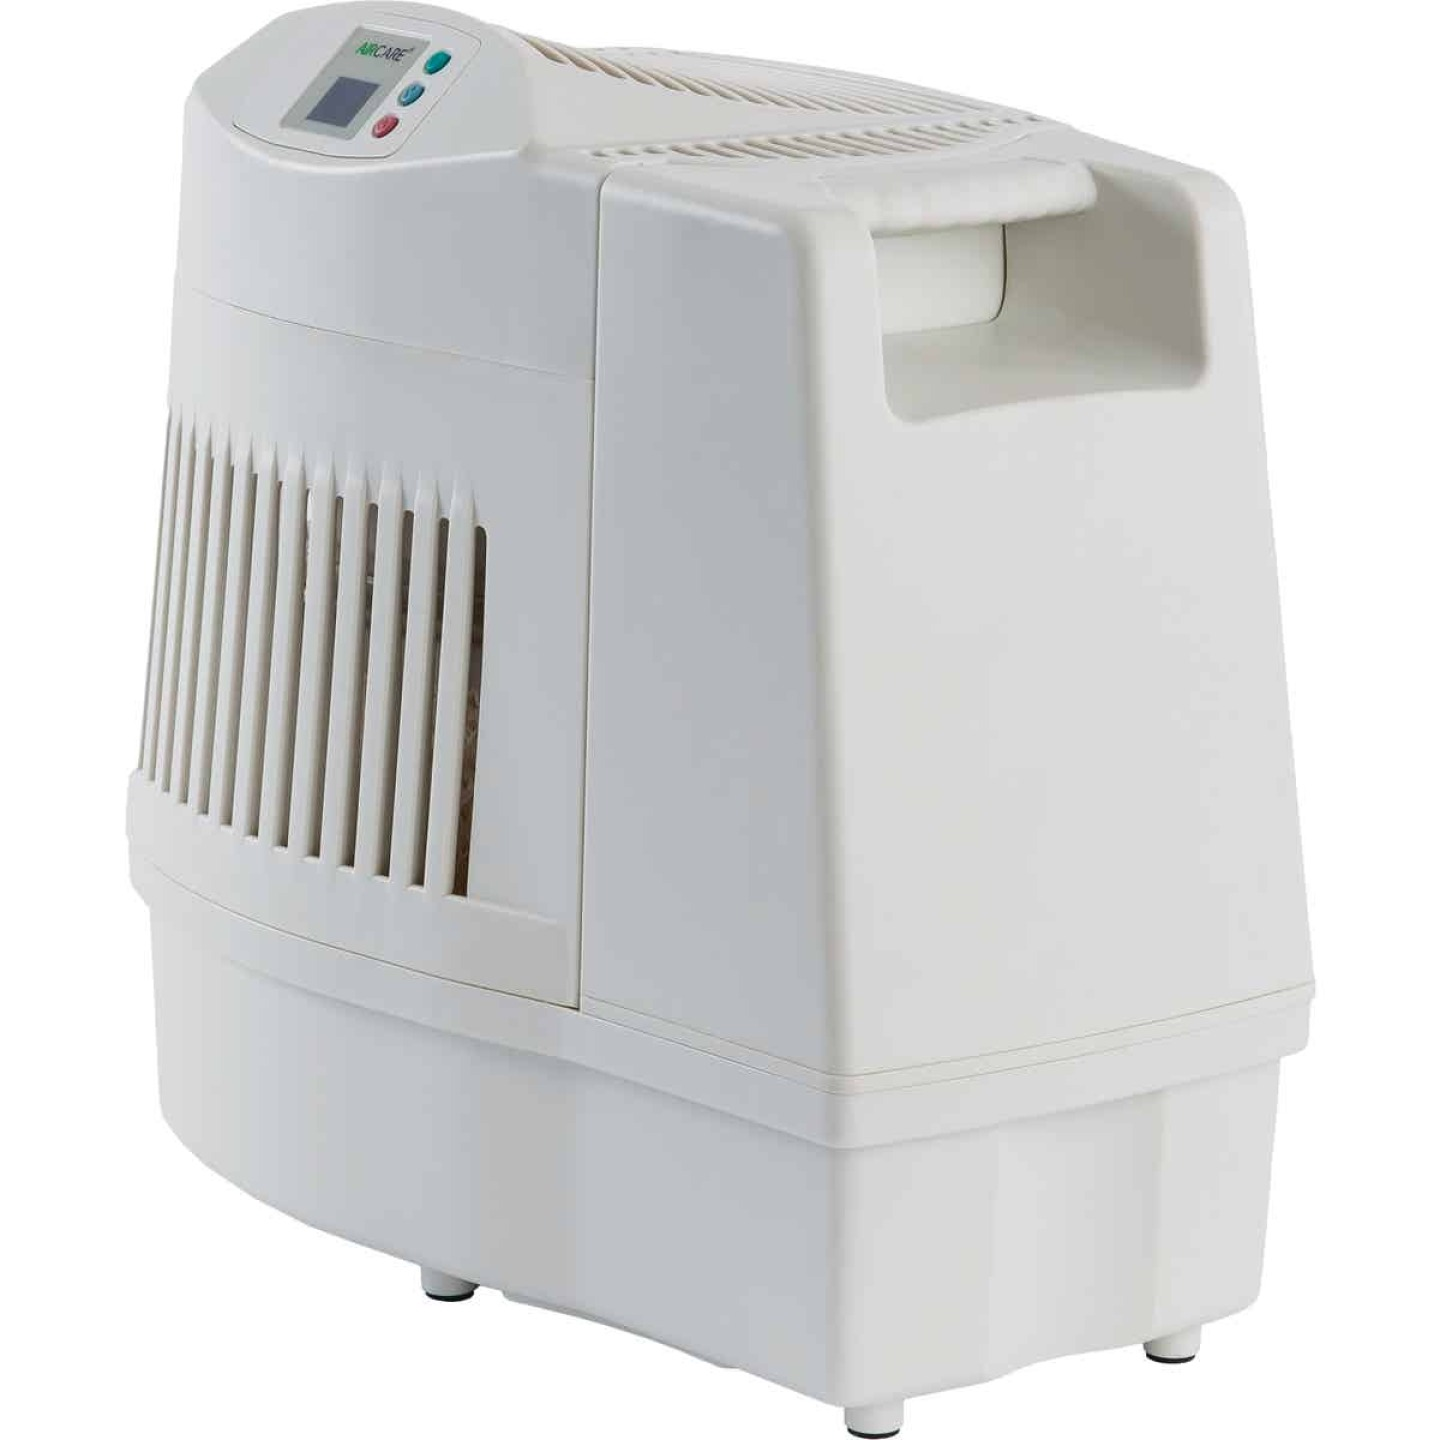 AirCare 2-1/2 Gal. Capacity 2600 Sq. Ft. Mini Console Evaporative Humidifier Image 4